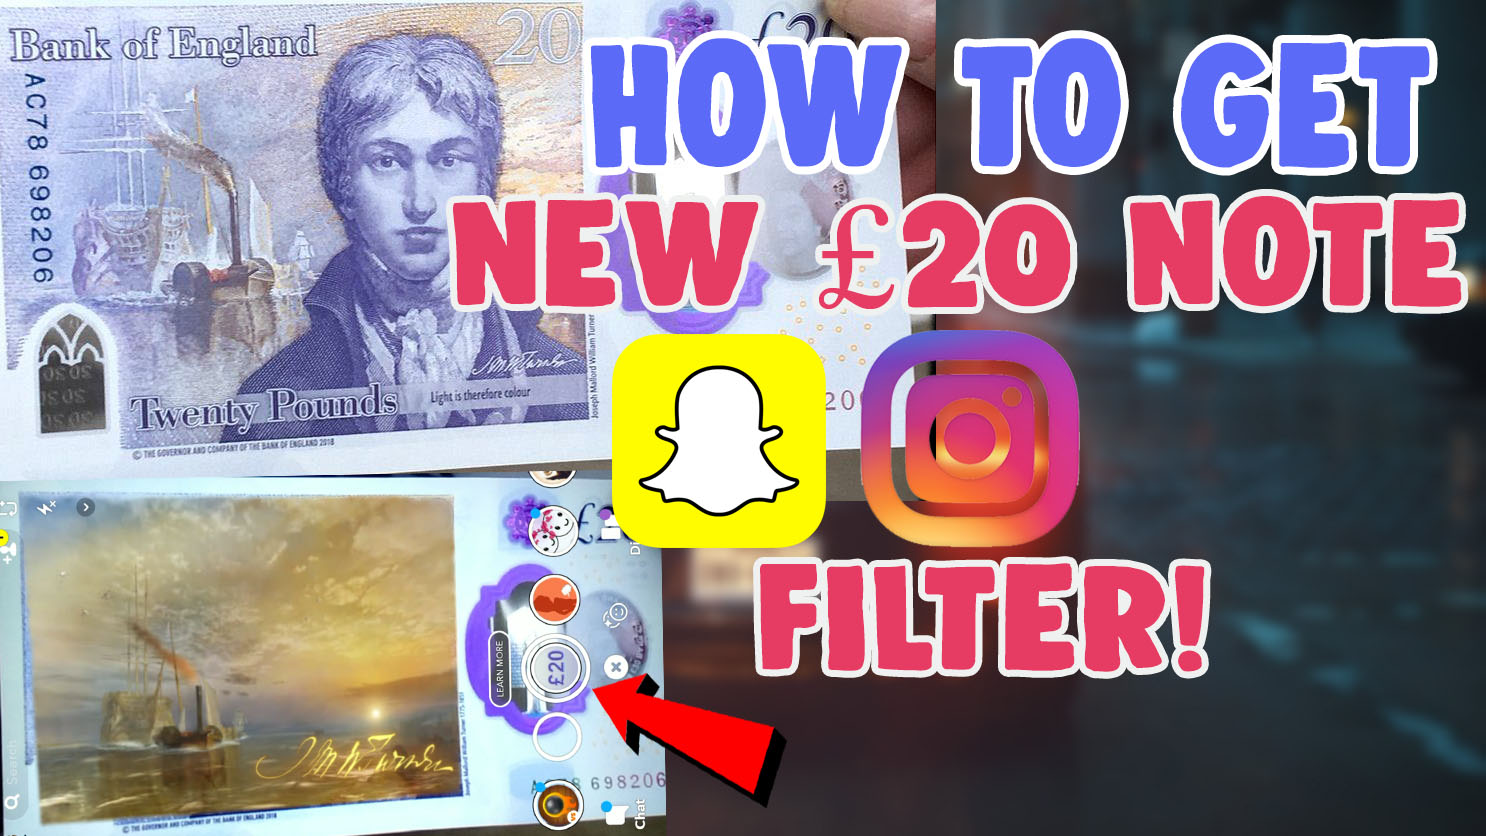 £20 note snapchat filter